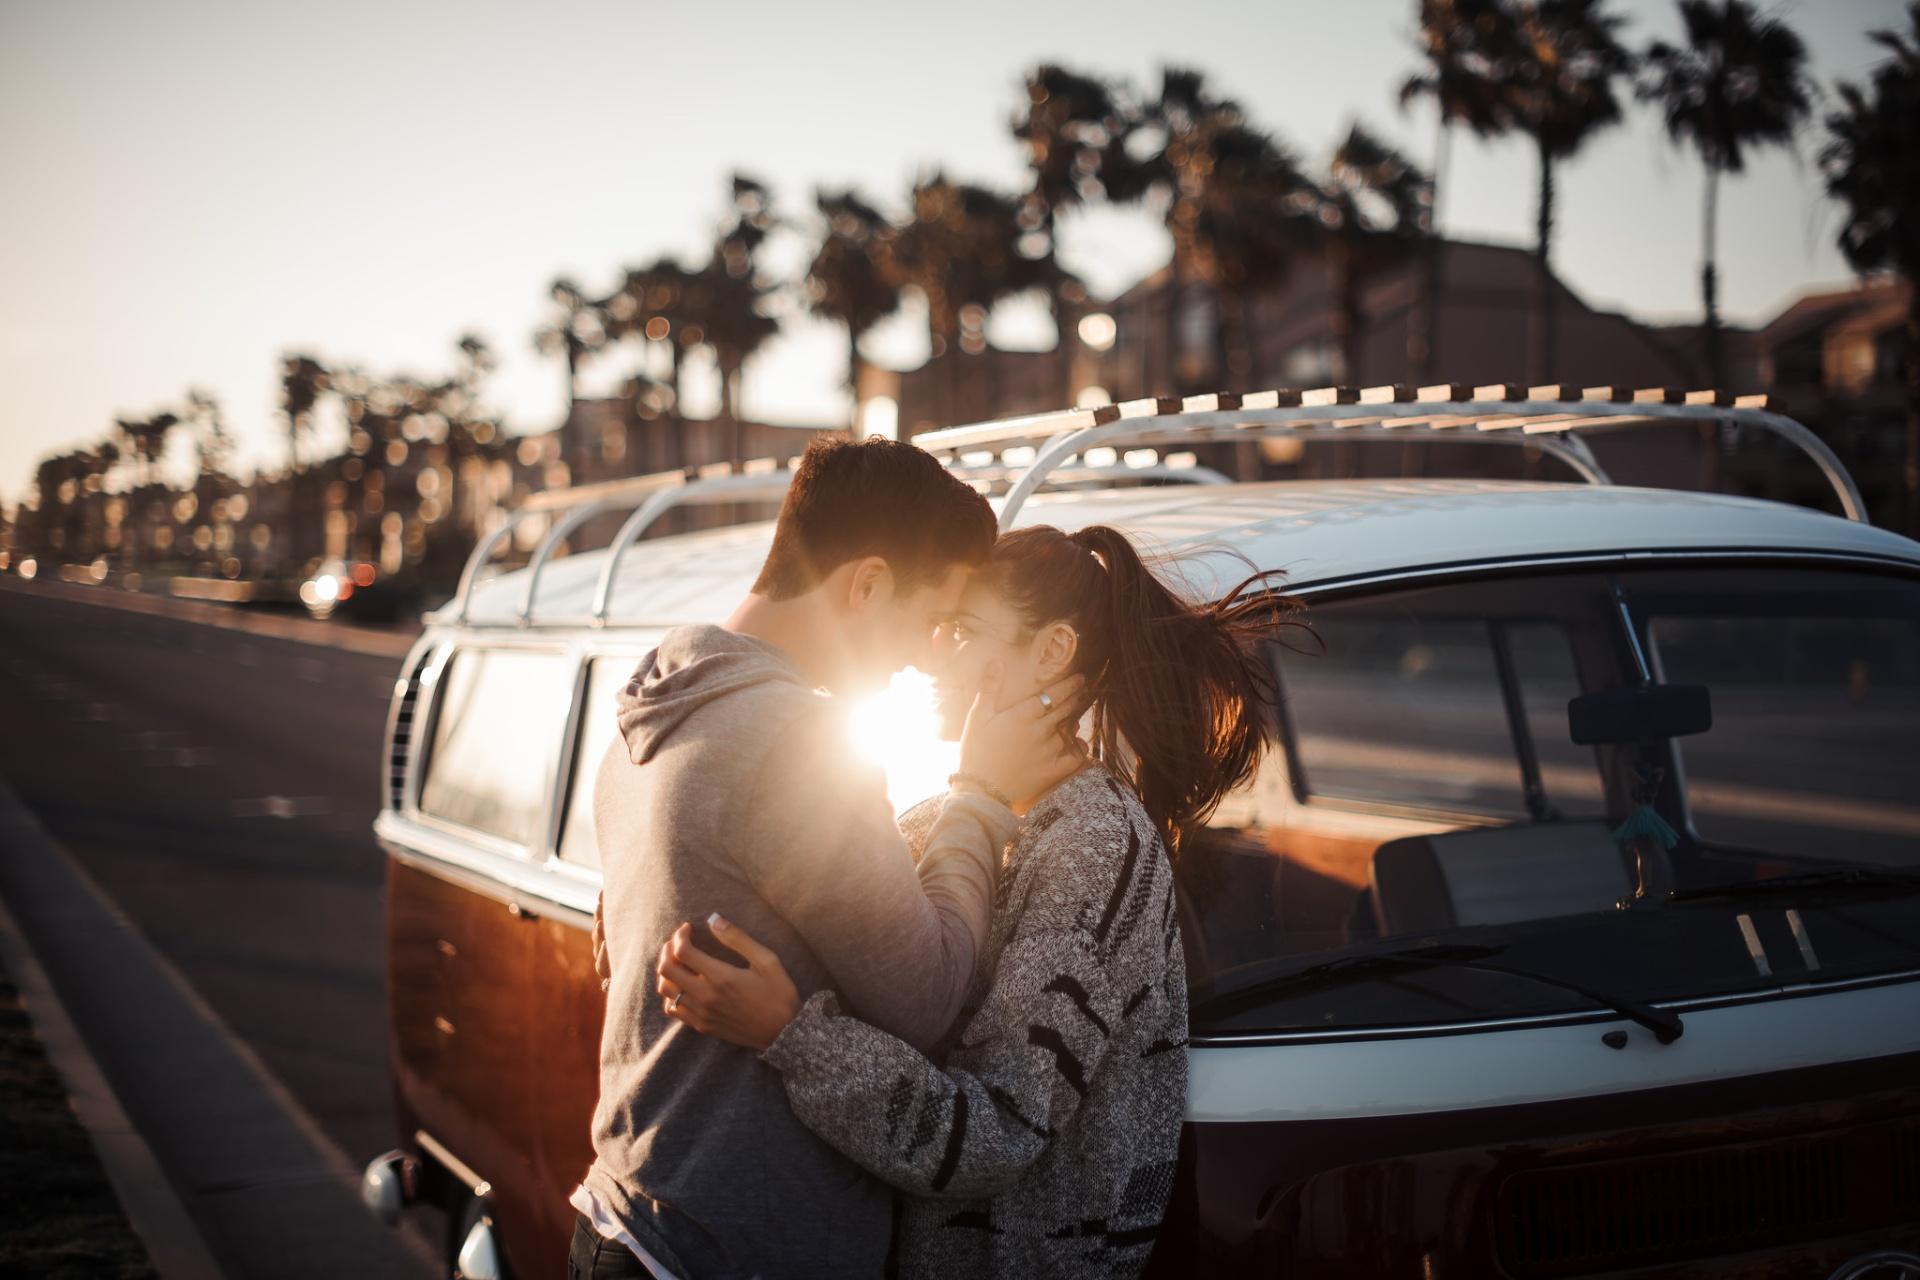 When You Love Someone, Putting Effort Into The Relationship Does Not Seem Like A Big Deal